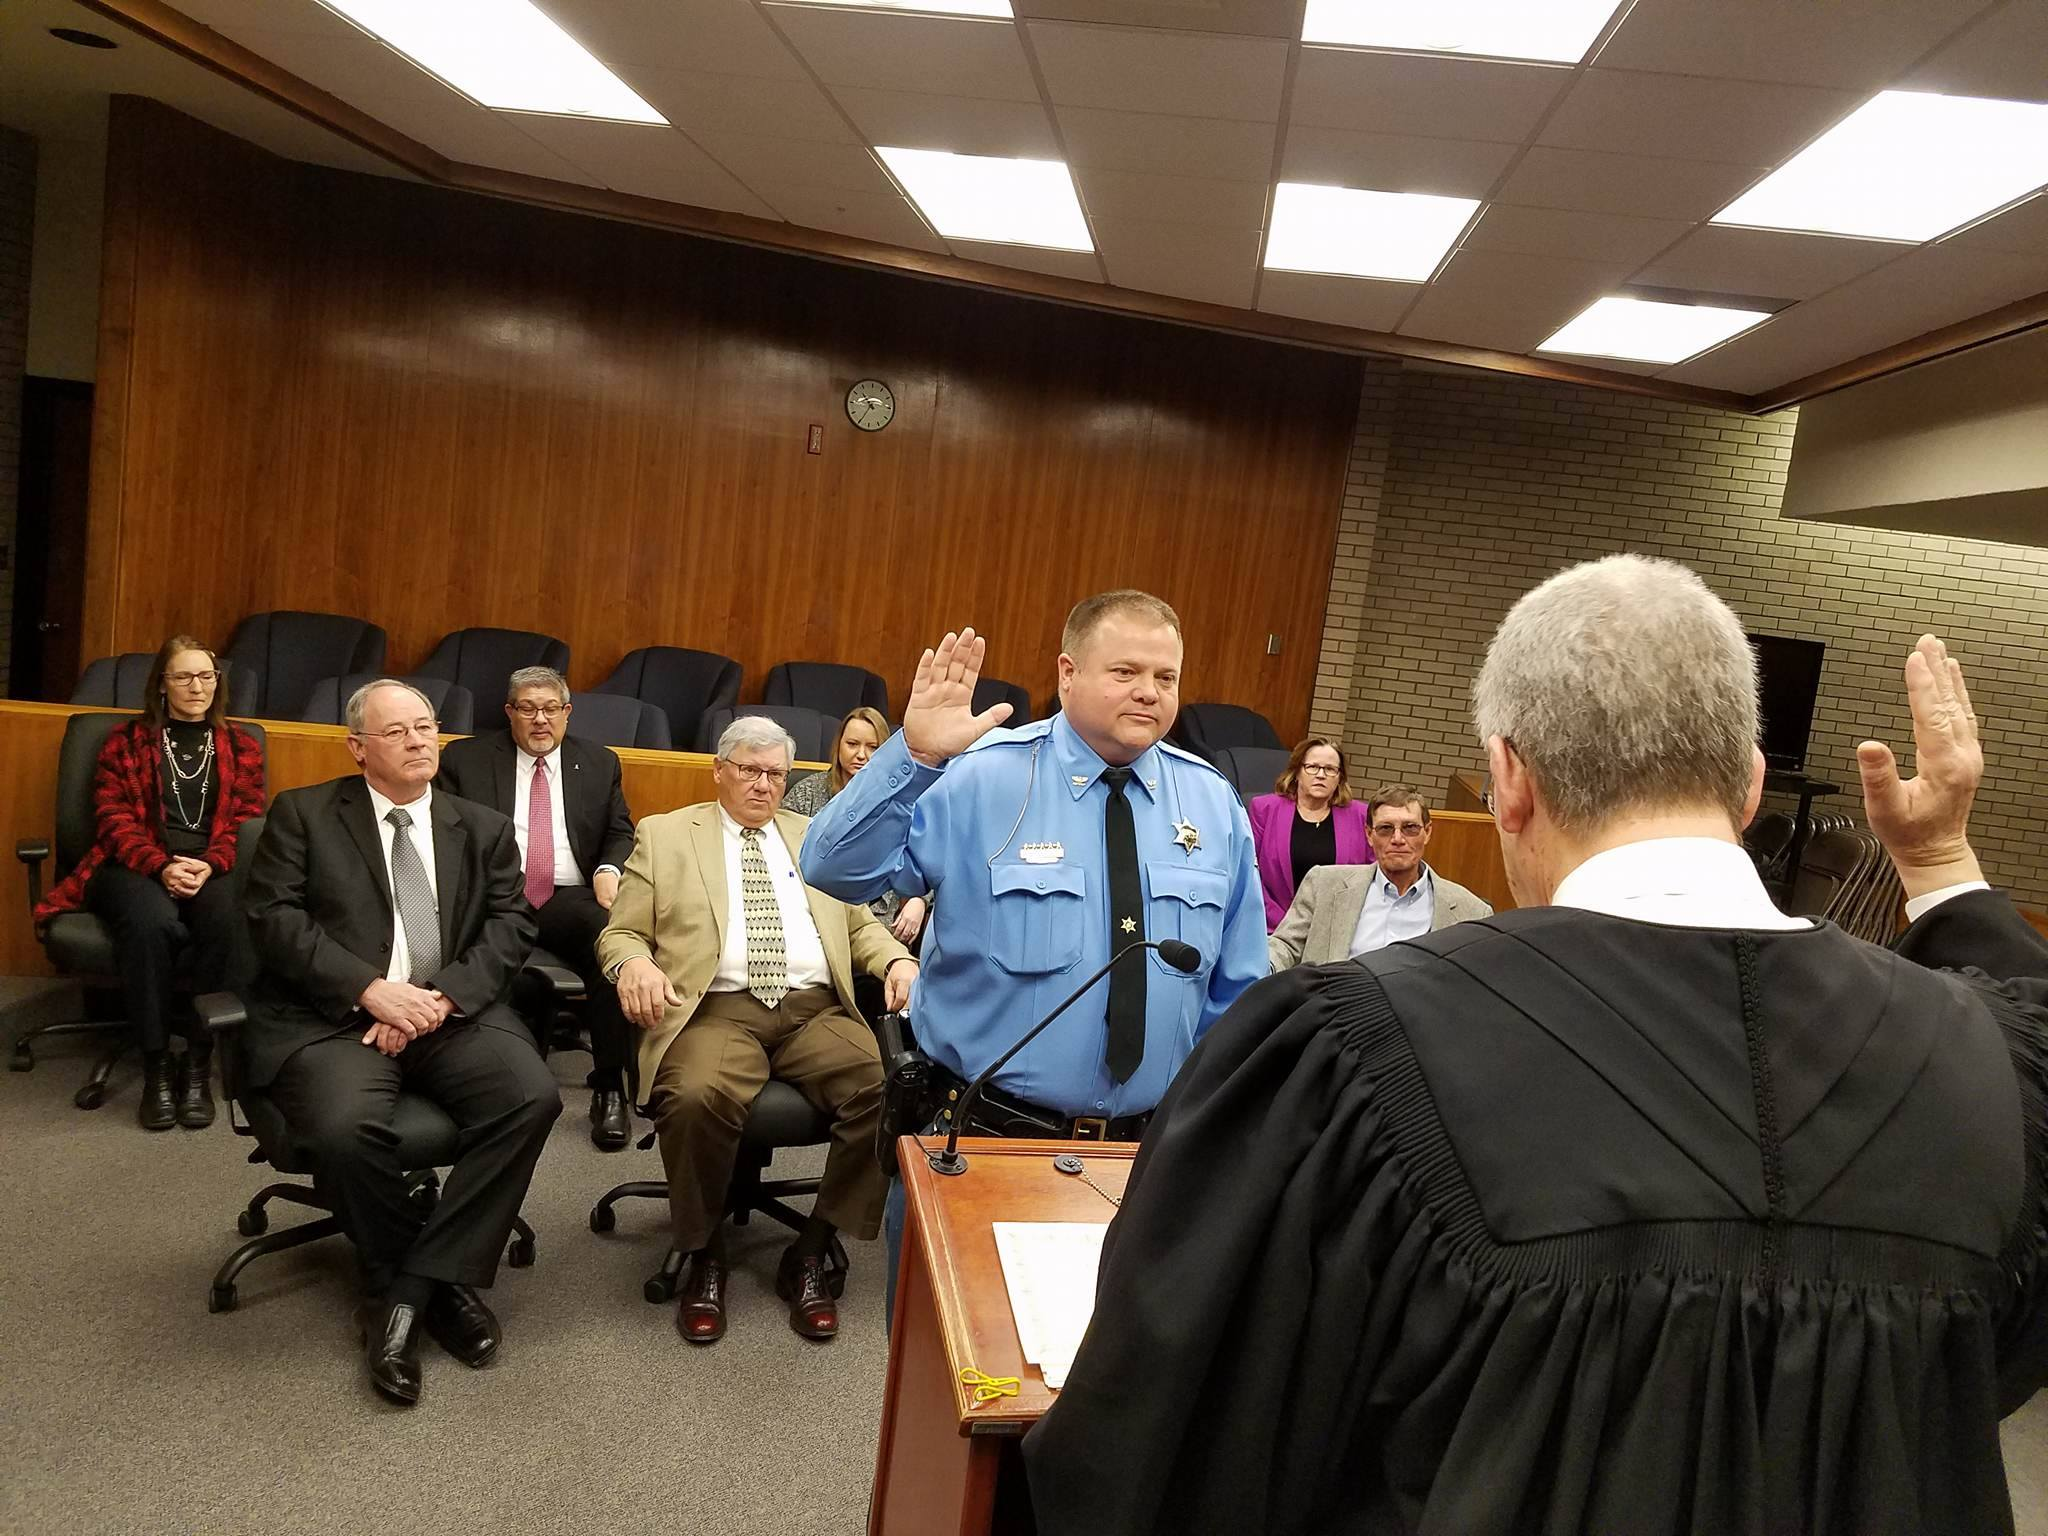 Saline County Officials Sworn-In